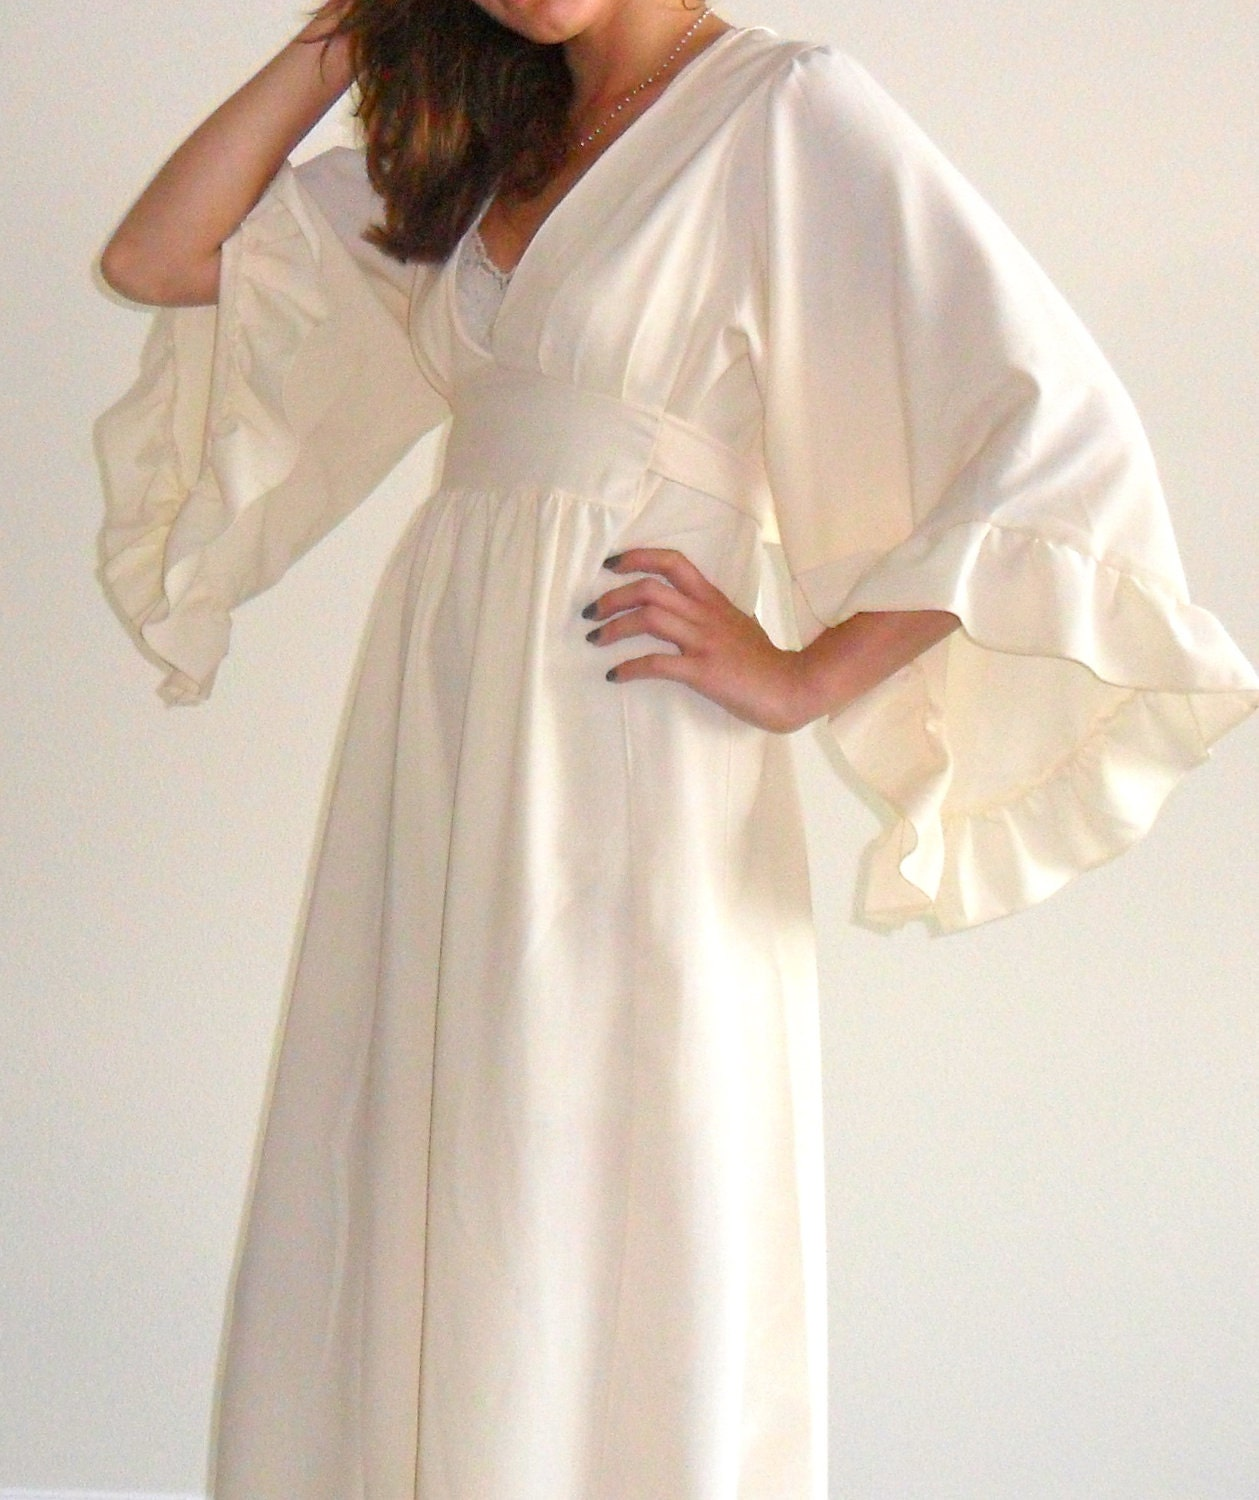 Bohemian Hippie Wedding inspired Cream-colored Maxi Prarie Dress